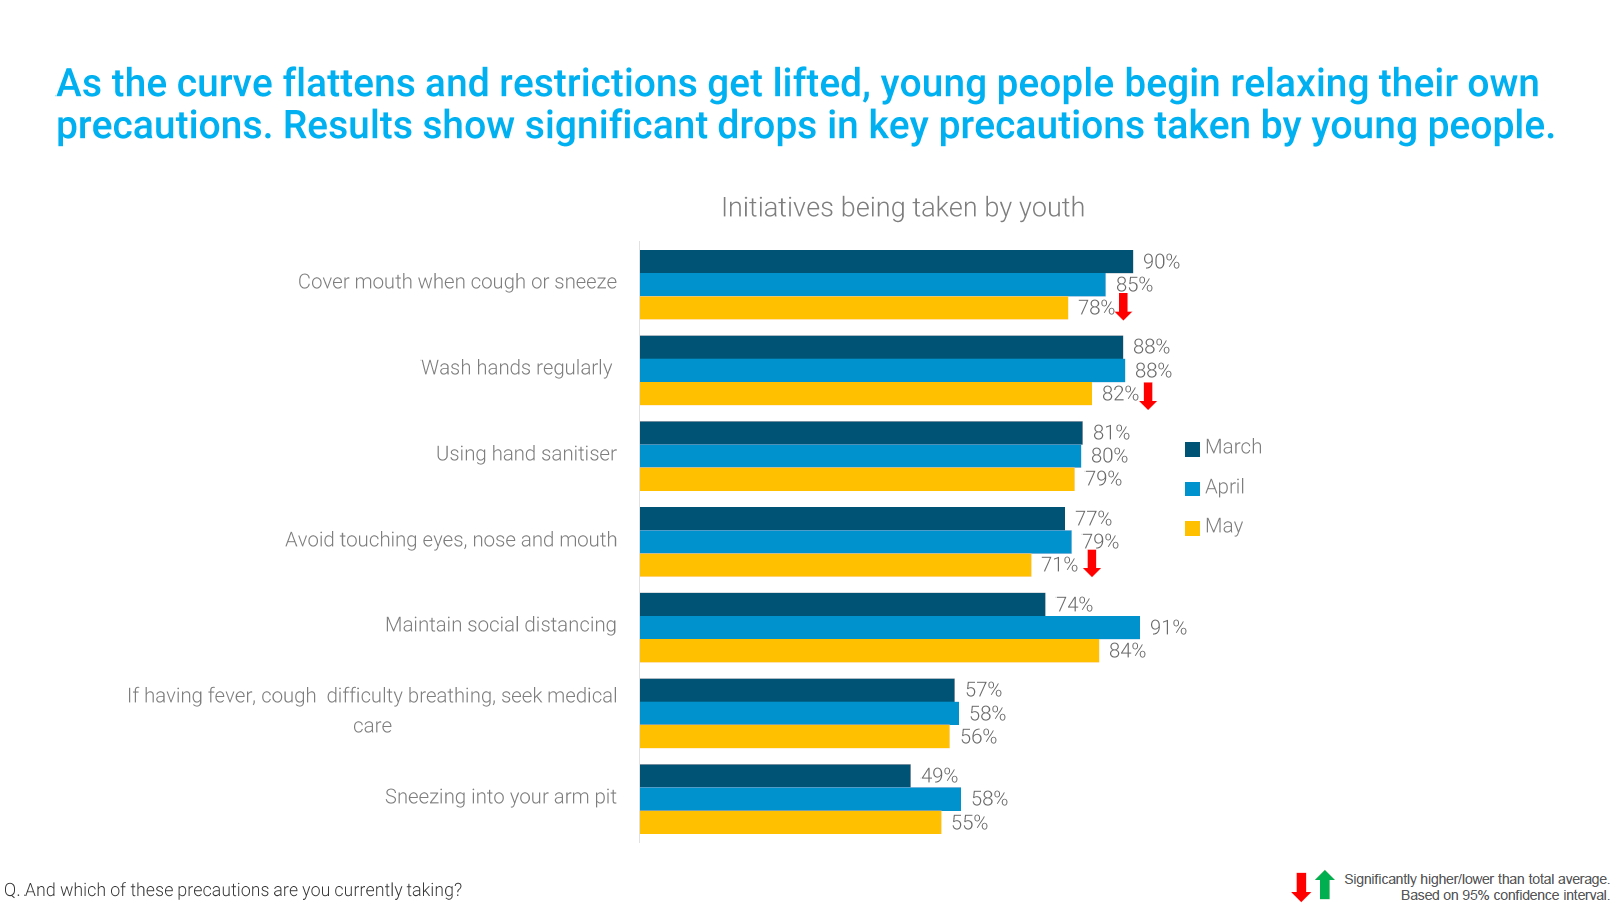 As the curve flattens and restrictions get lifted, young people relax